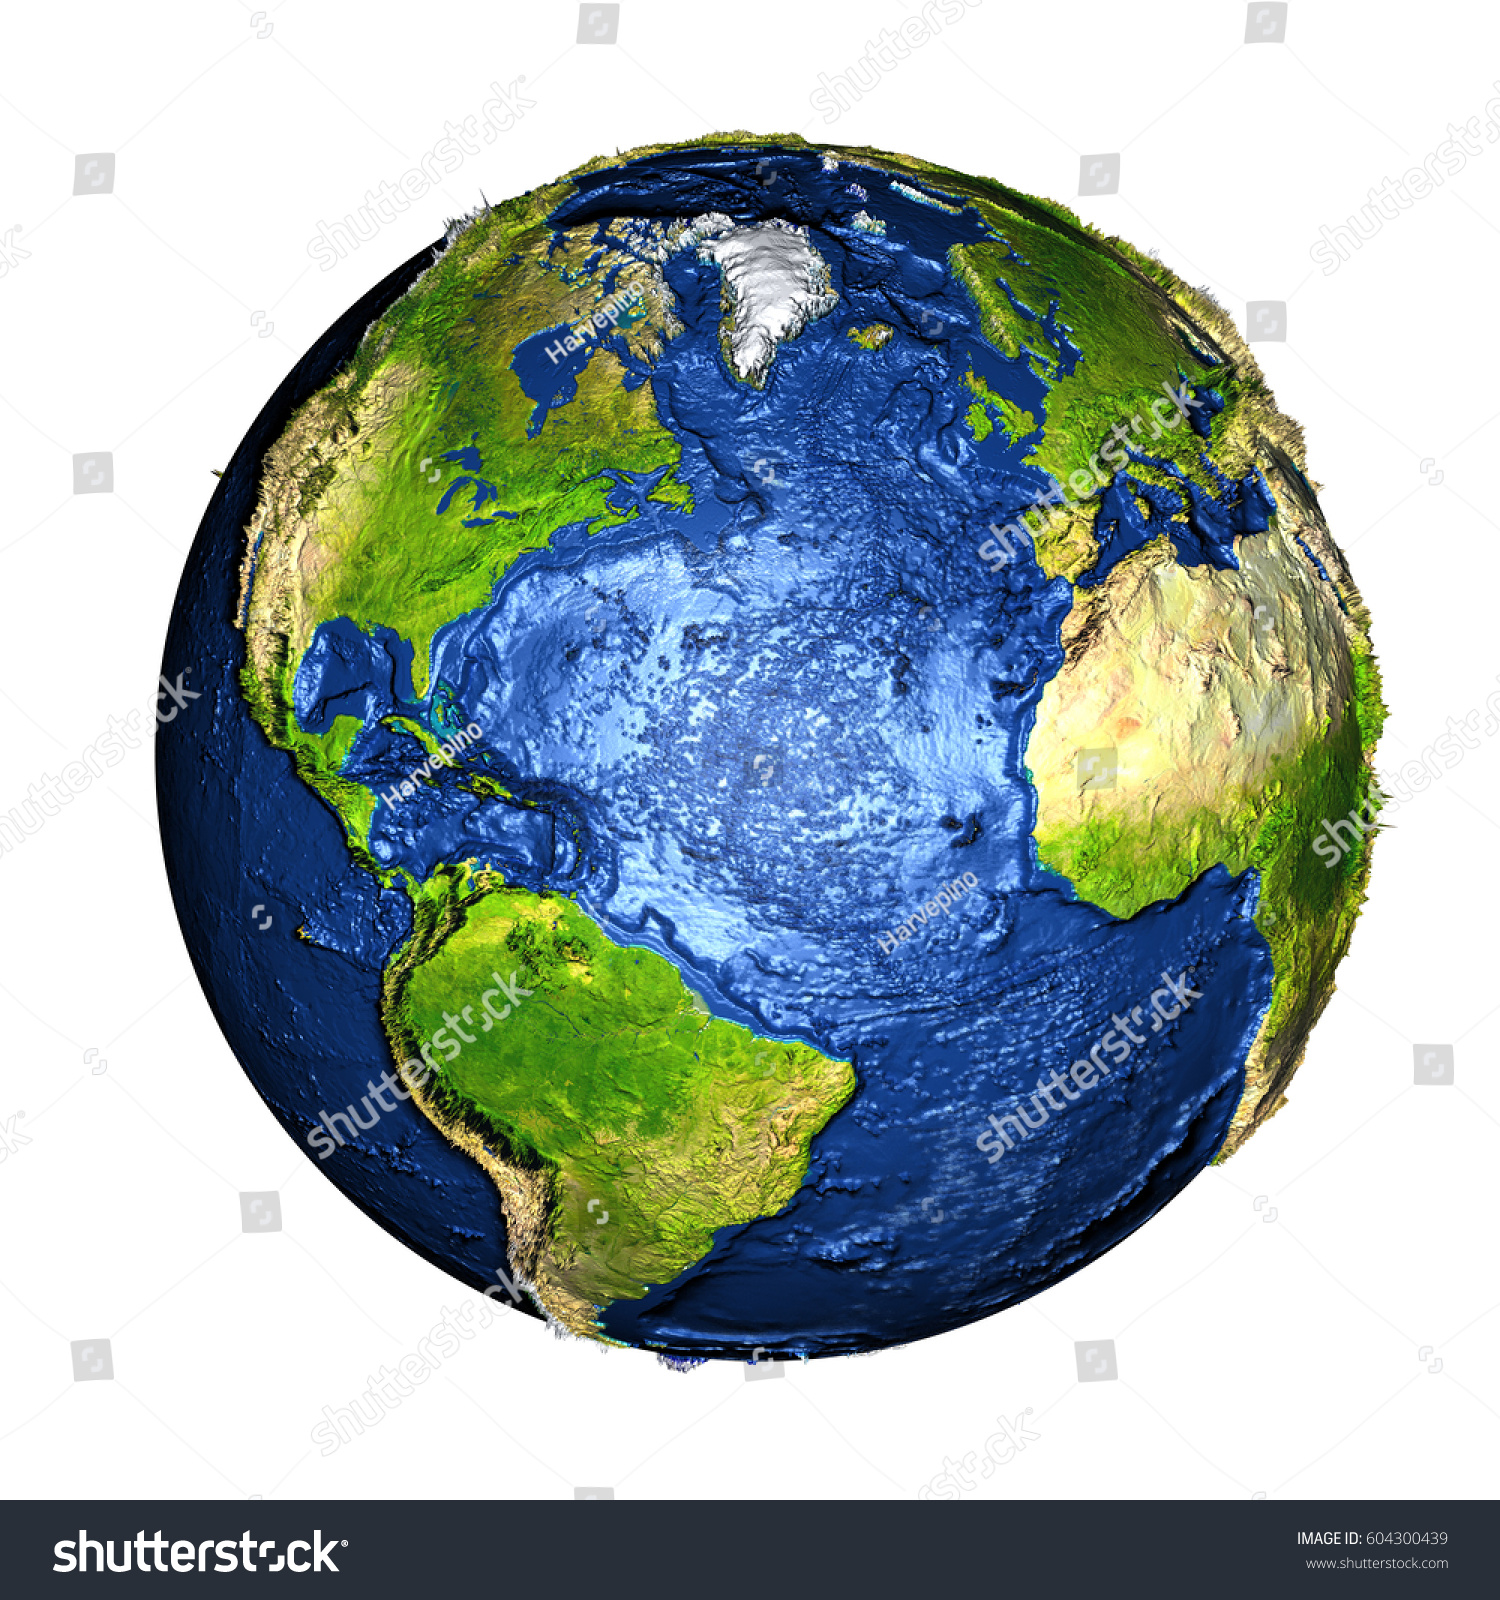 Royalty Free Stock Illustration Of Northern Hemisphere On Planet